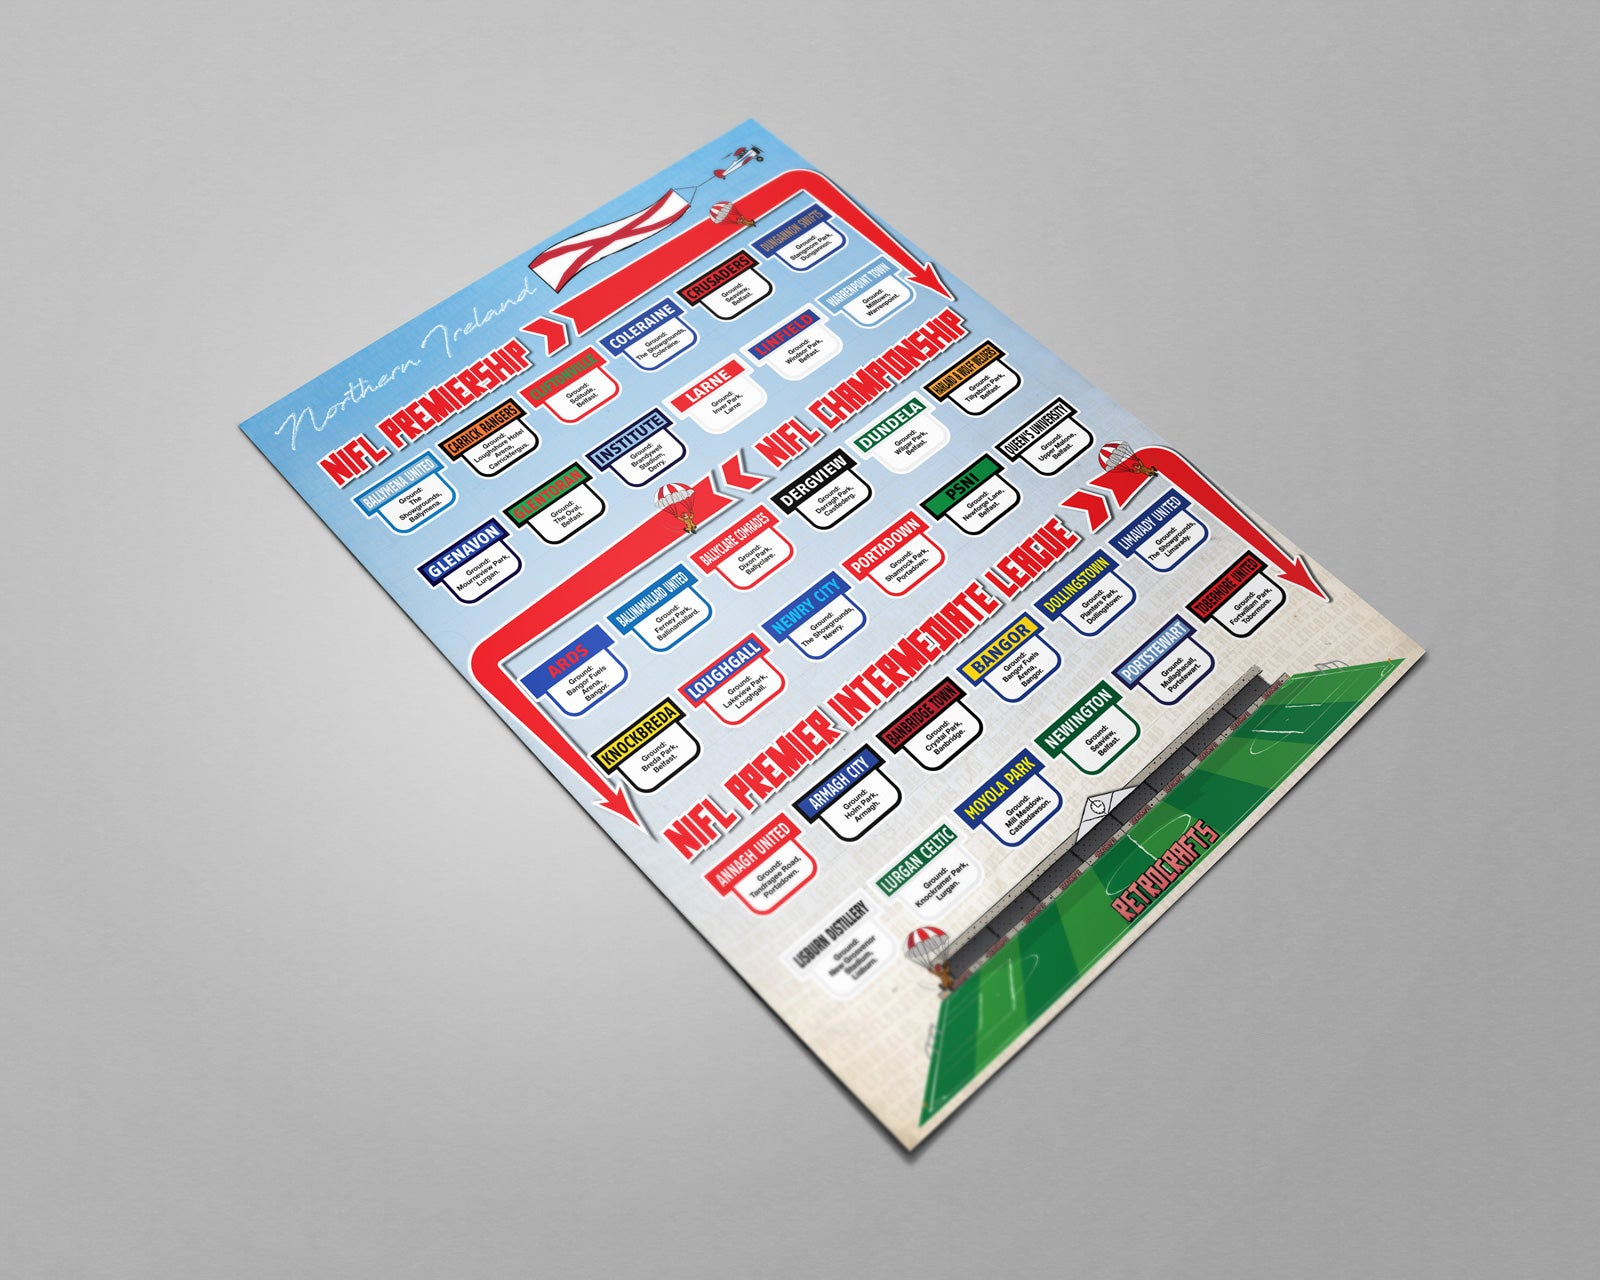 Northern Ireland Football League Premiership, Championship and Premier Intermediate Leagues Tiers 1-3 2019 Season League Ladders